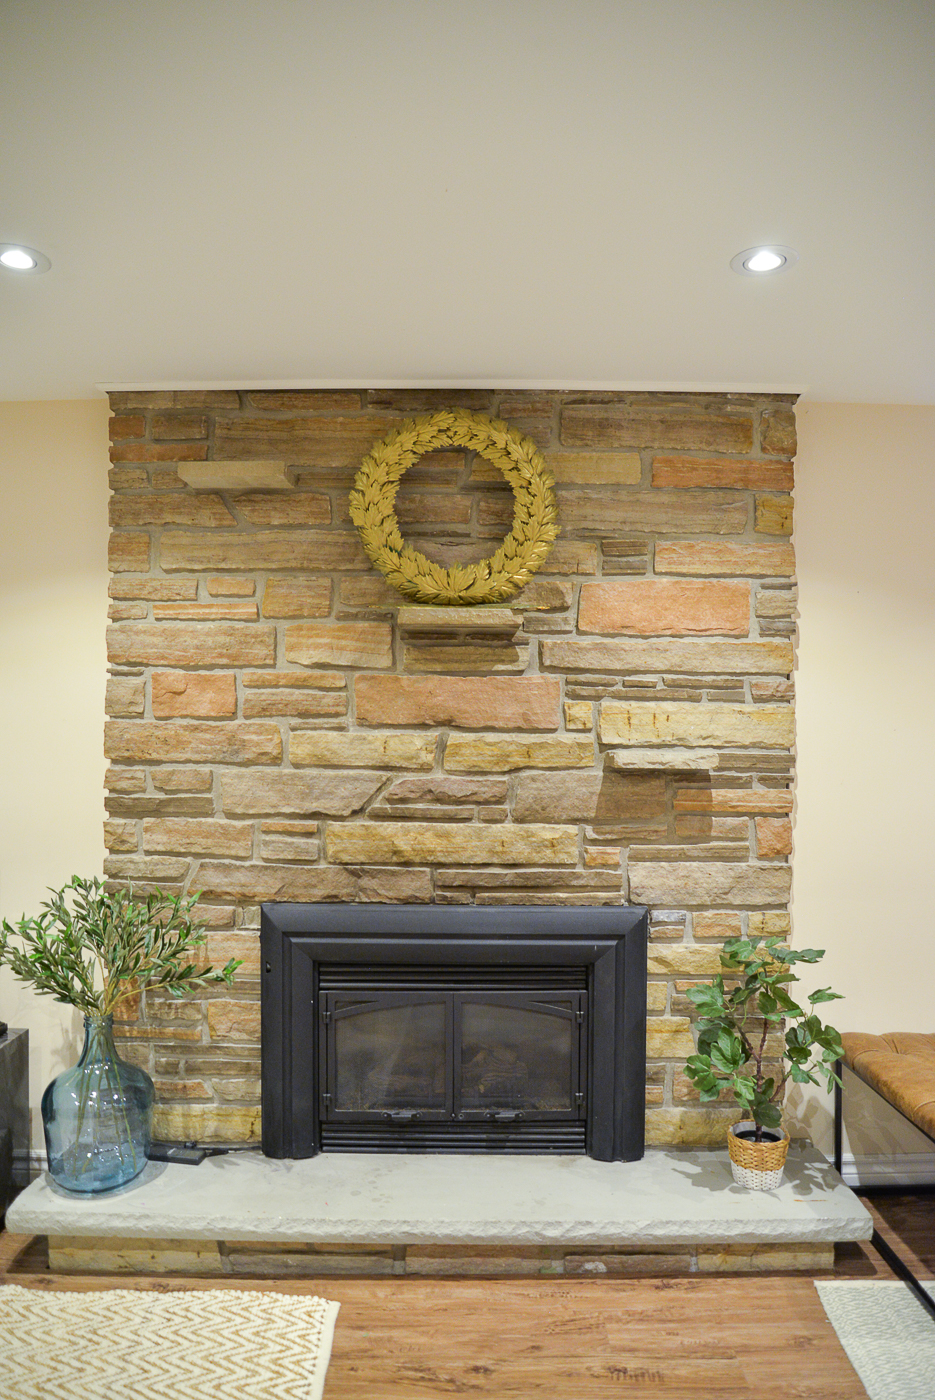 fireplace remodel, stone fireplace makeover, basement remodel, basement layout, basement ideas, one room challenge basement